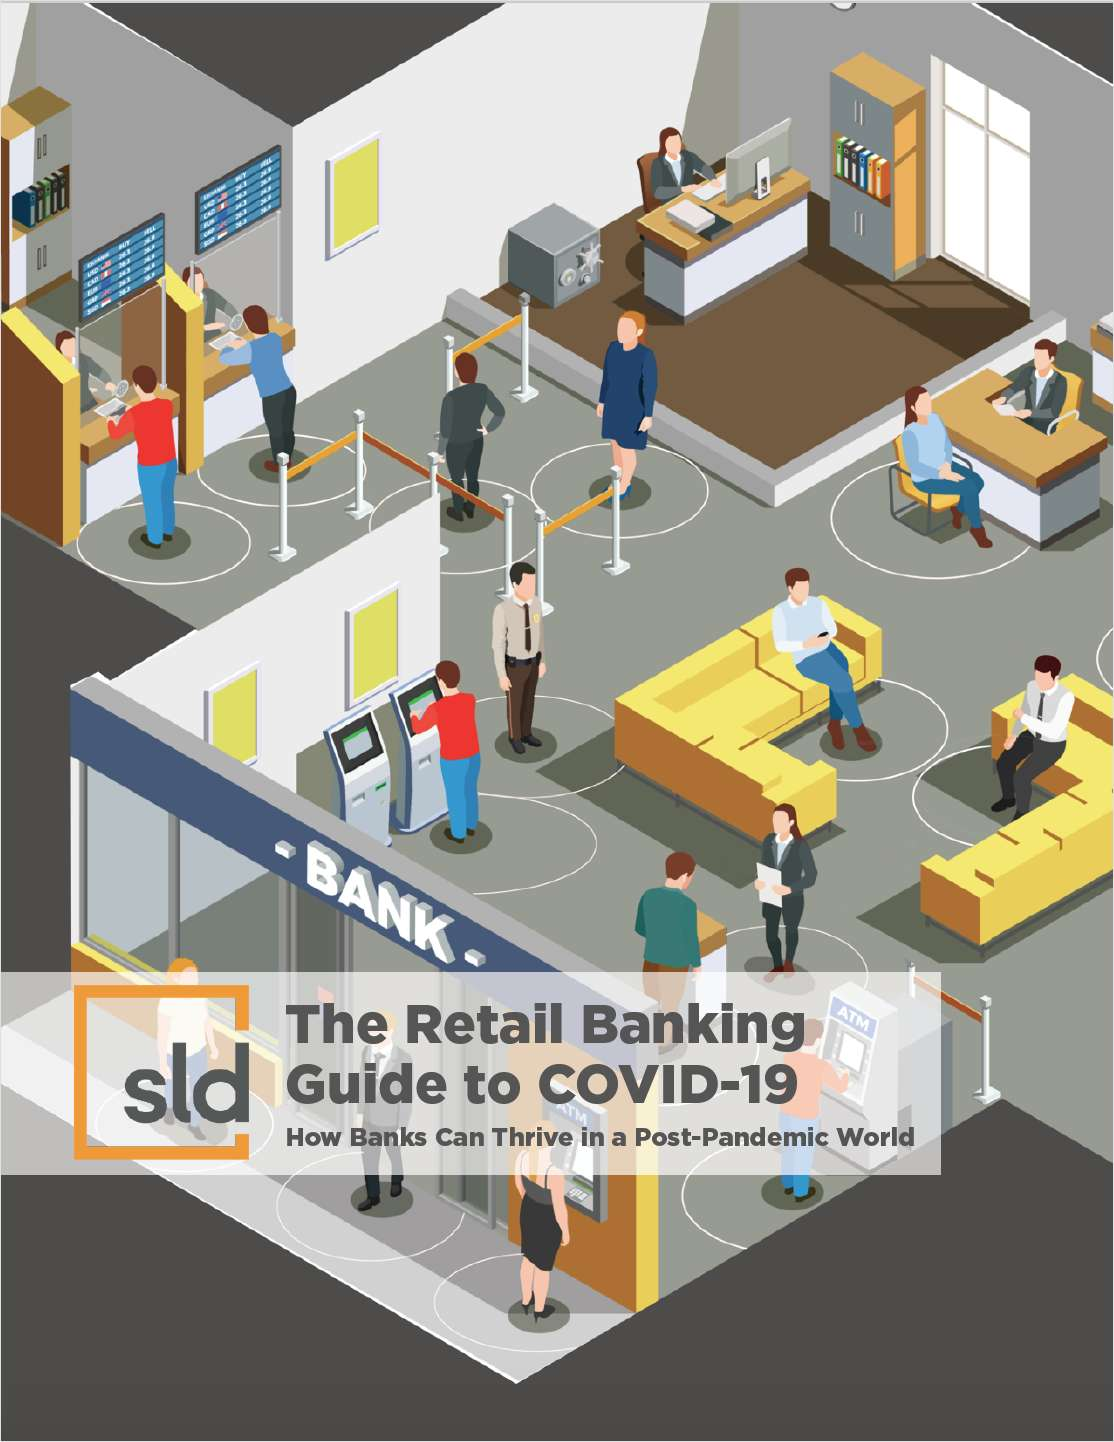 The Retail Banking Guide to COVID-19